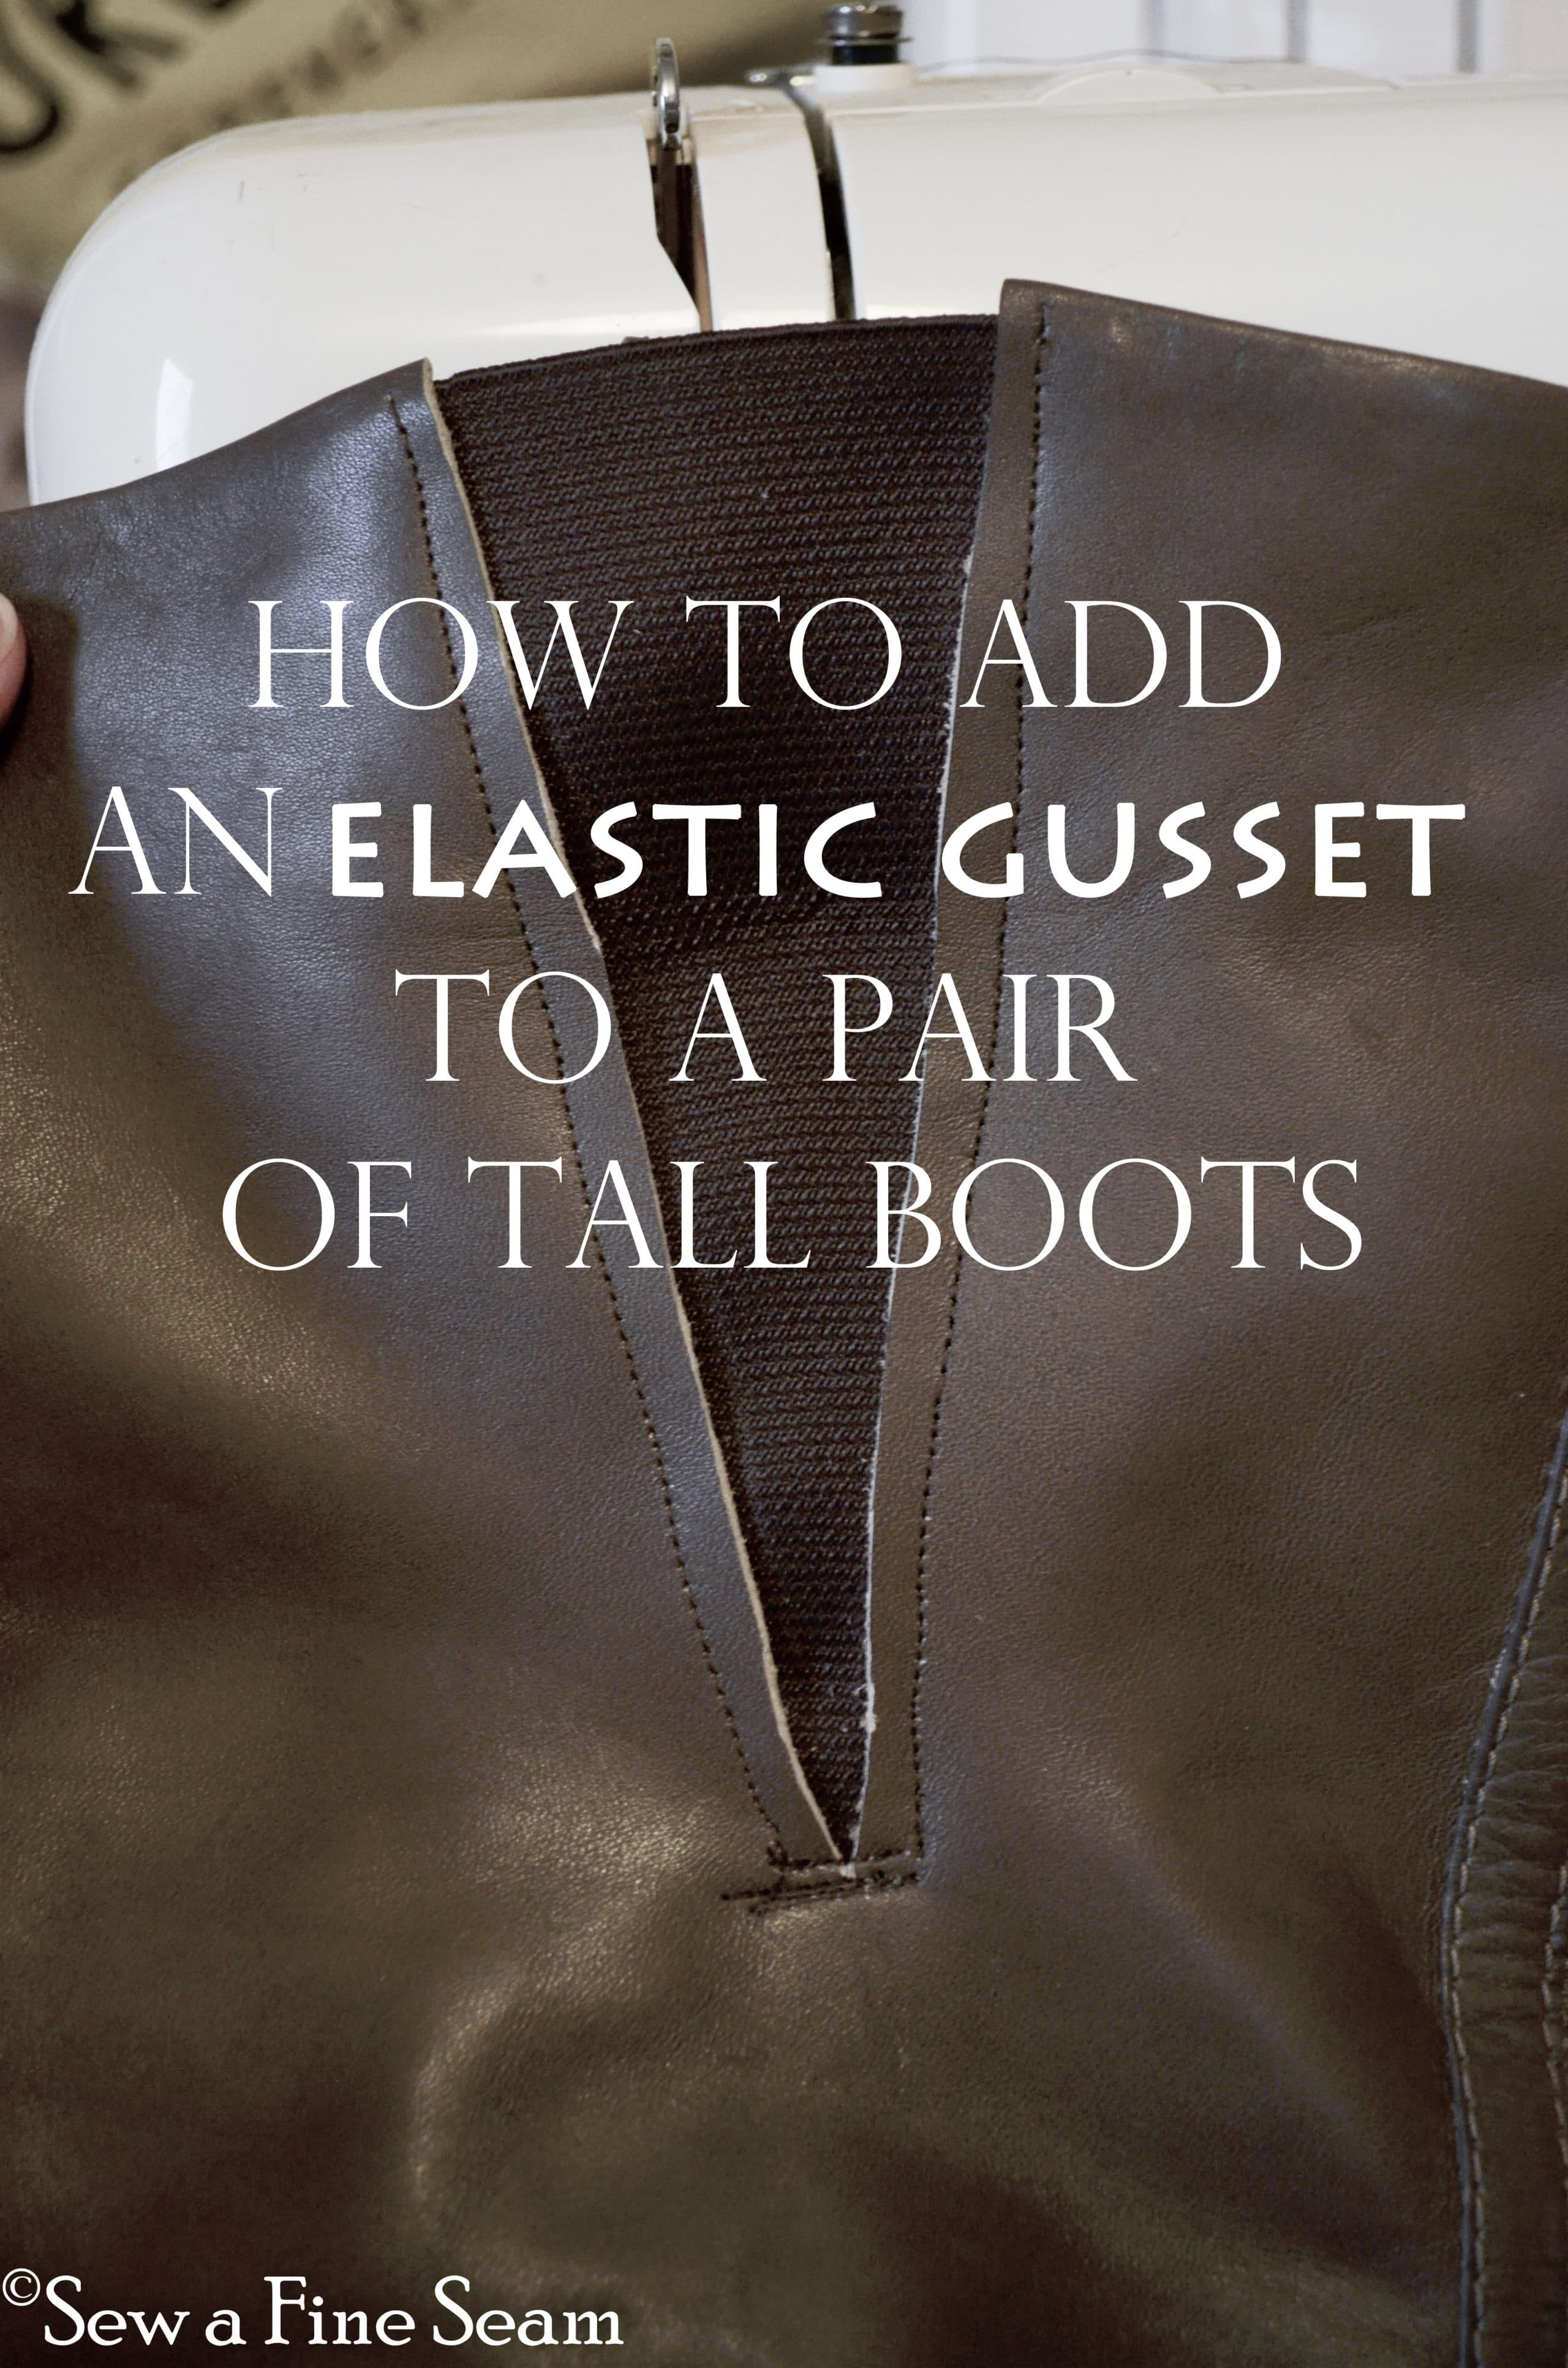 Sew A Fine Seam: How To Add An Elastic Gusset To Tall Boots